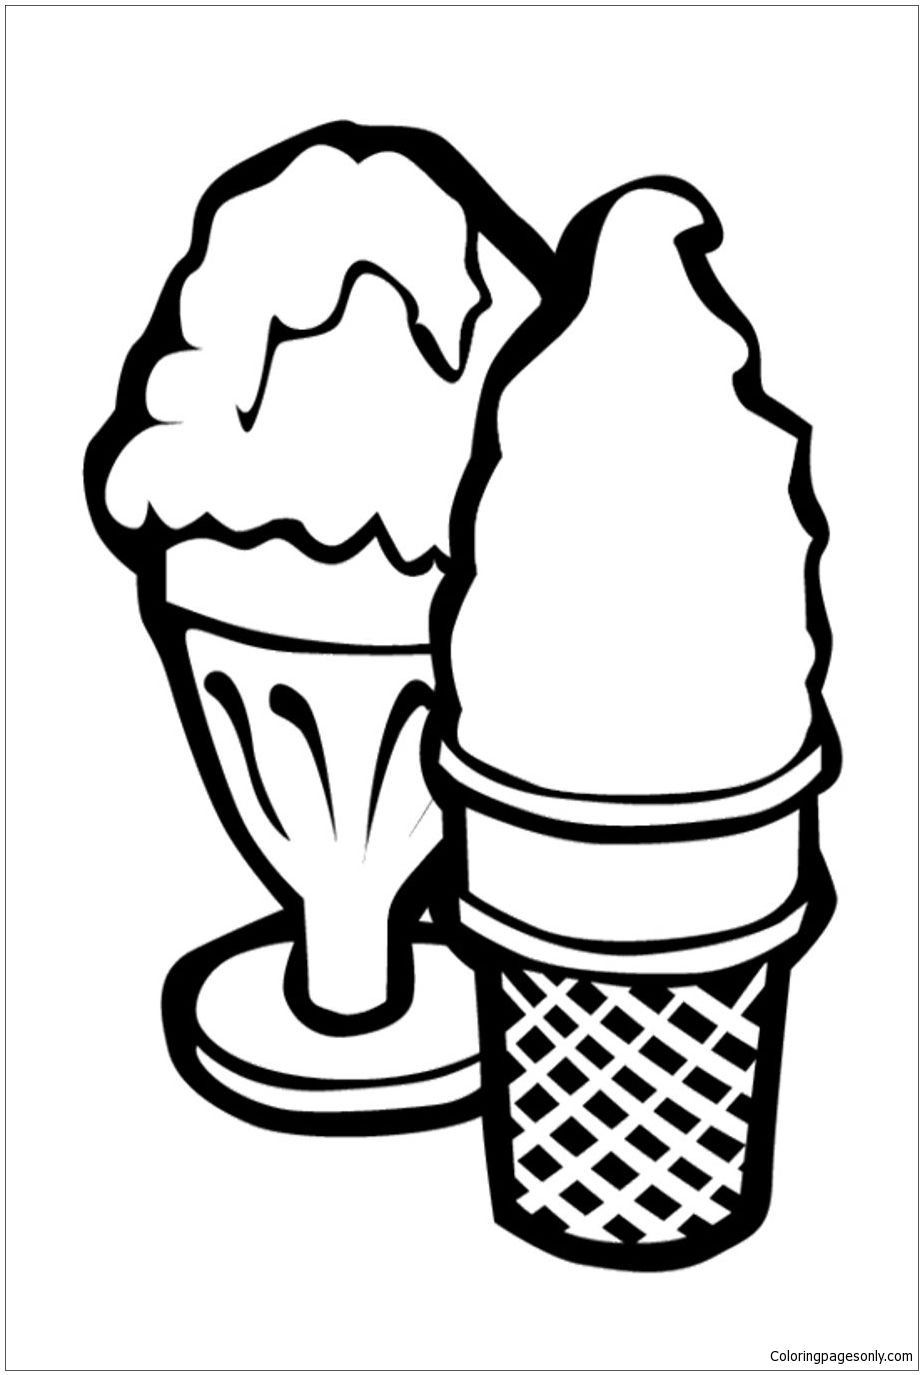 Ice Cream Coloring Page, Free Coloring Pages Online, Free